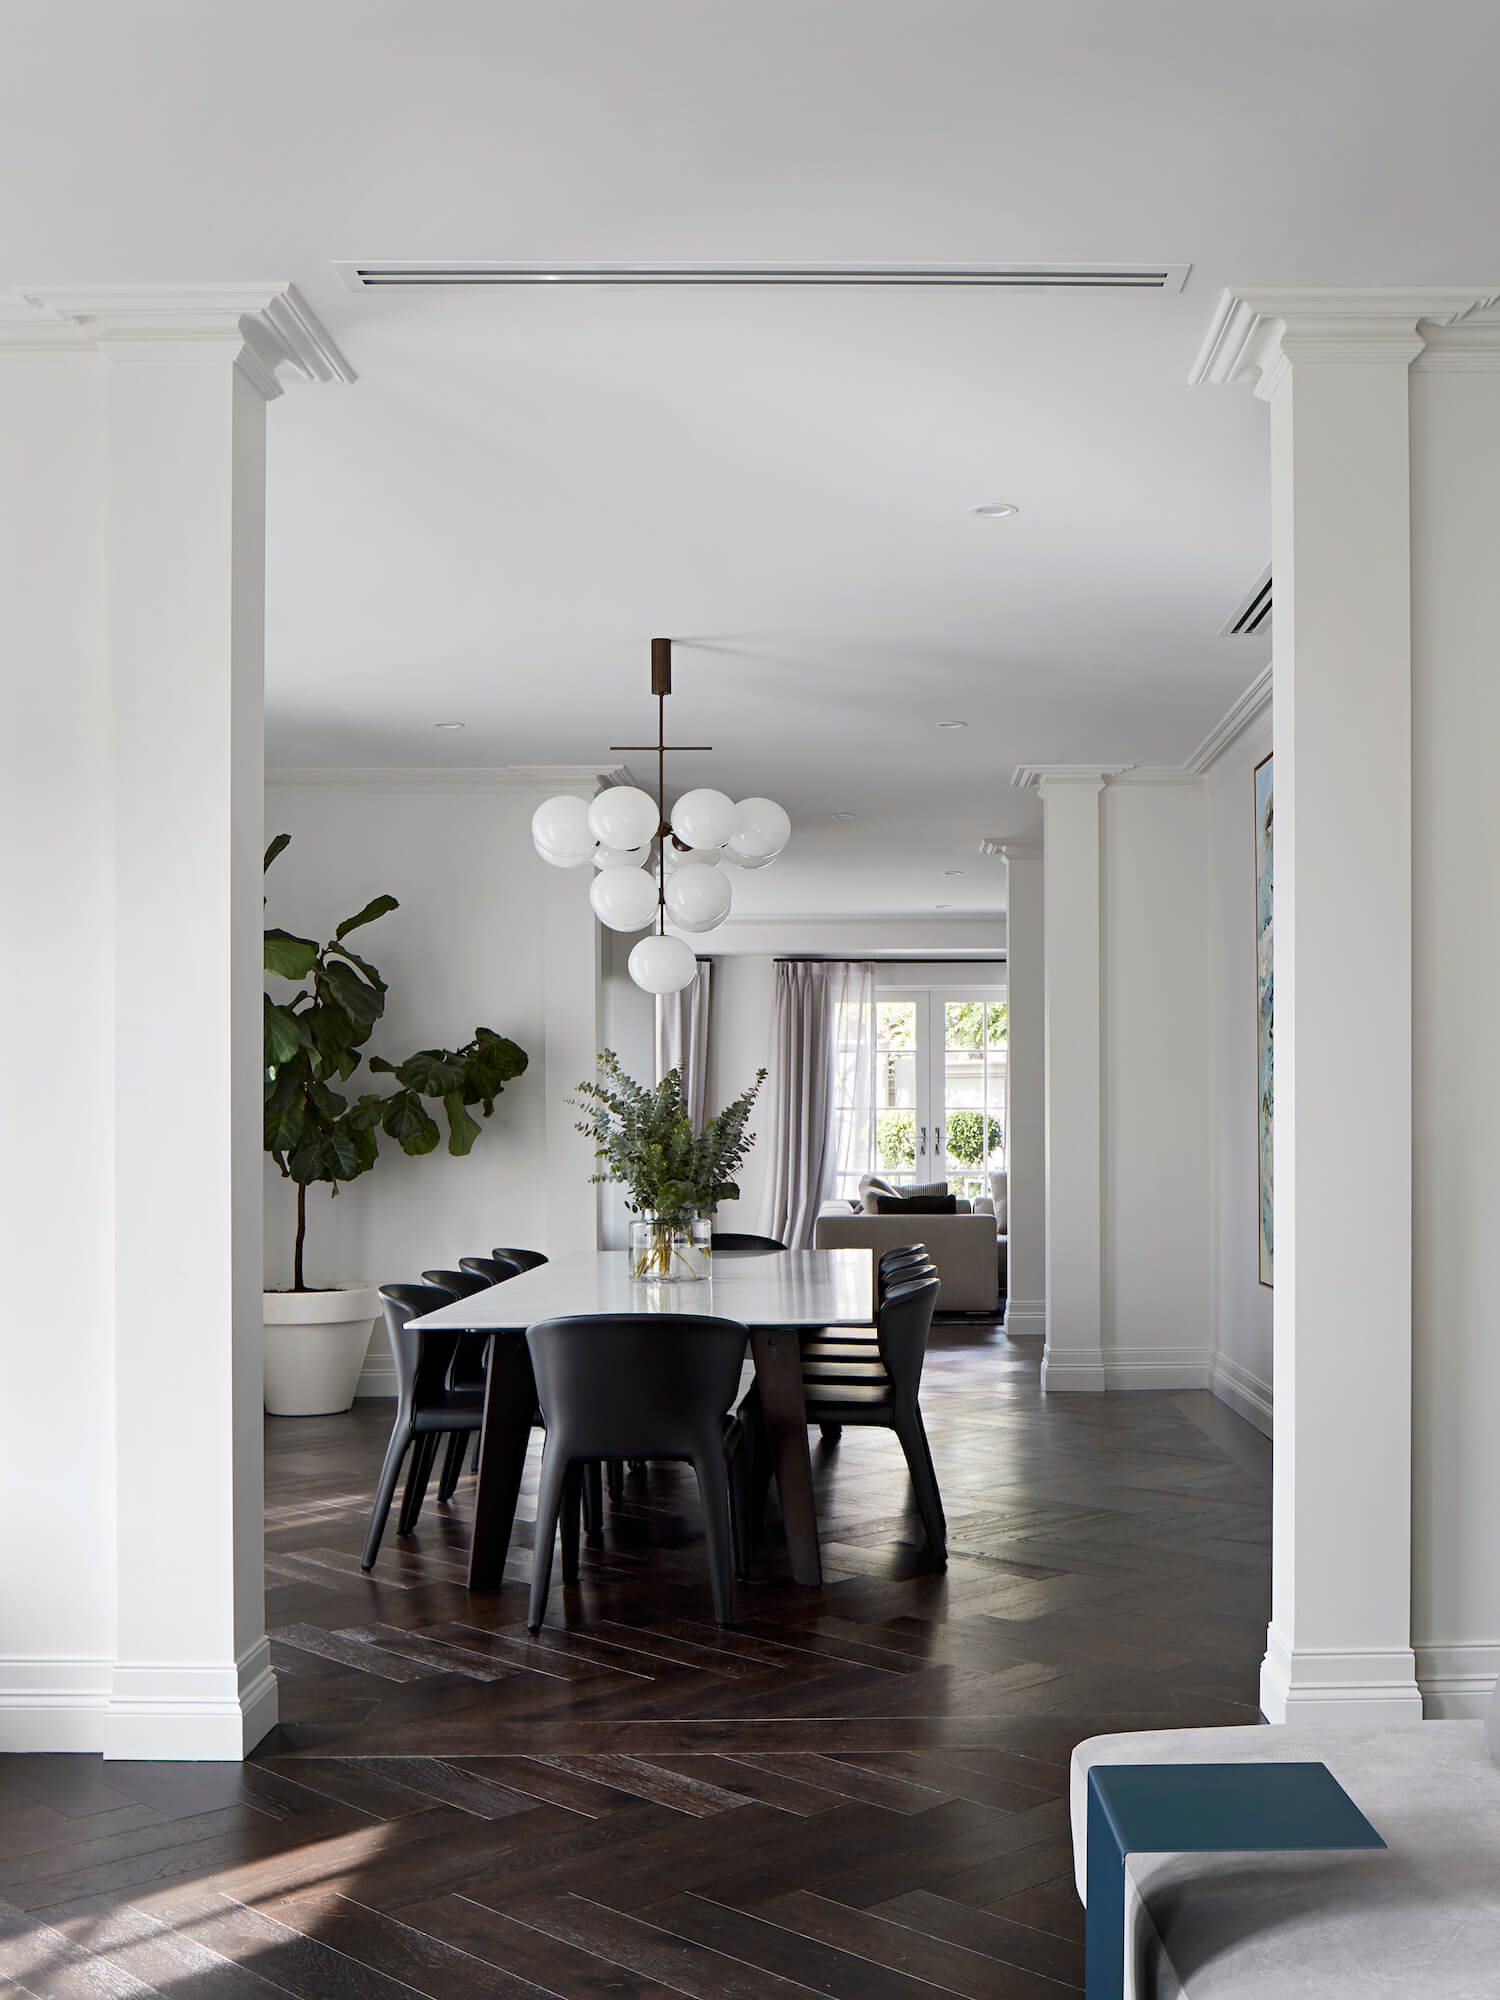 est living interiors 17 Glen Road Toorak Lauren Tarrant Design 1